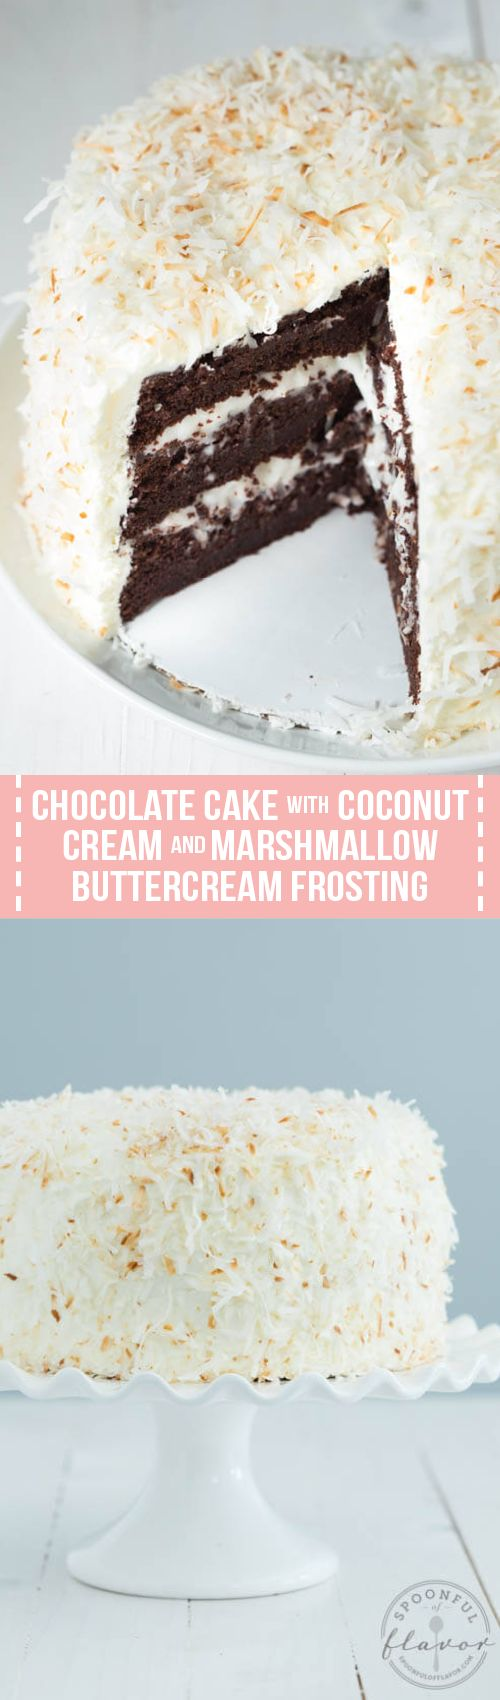 Chocolate cake with coconut cream filling, marshmallow buttercream frosting and toasted coconut is the perfect cake recipe for birthdays, holidays, parties and more! This 3-layer cake is packed with flavor and irresistible!